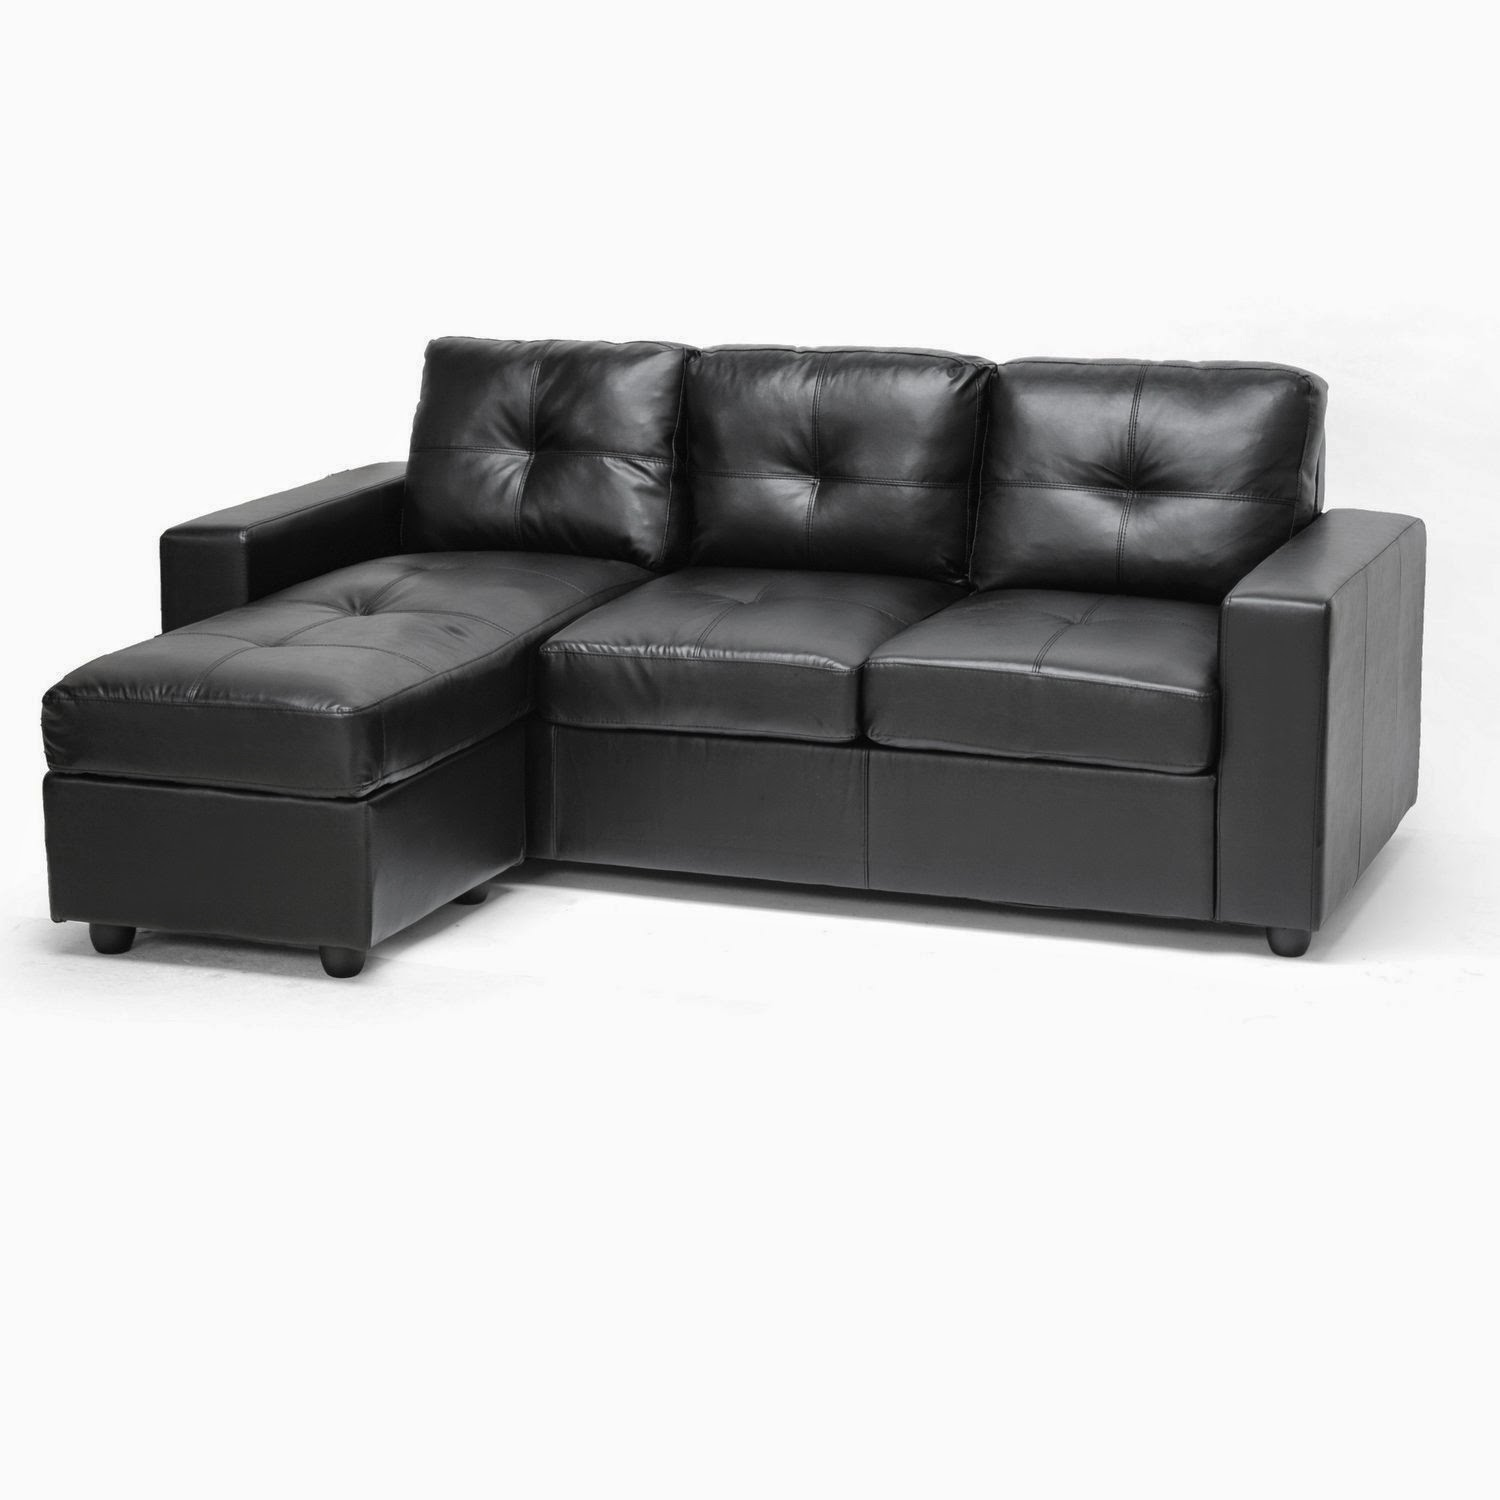 black leather couch cheap black leather couch